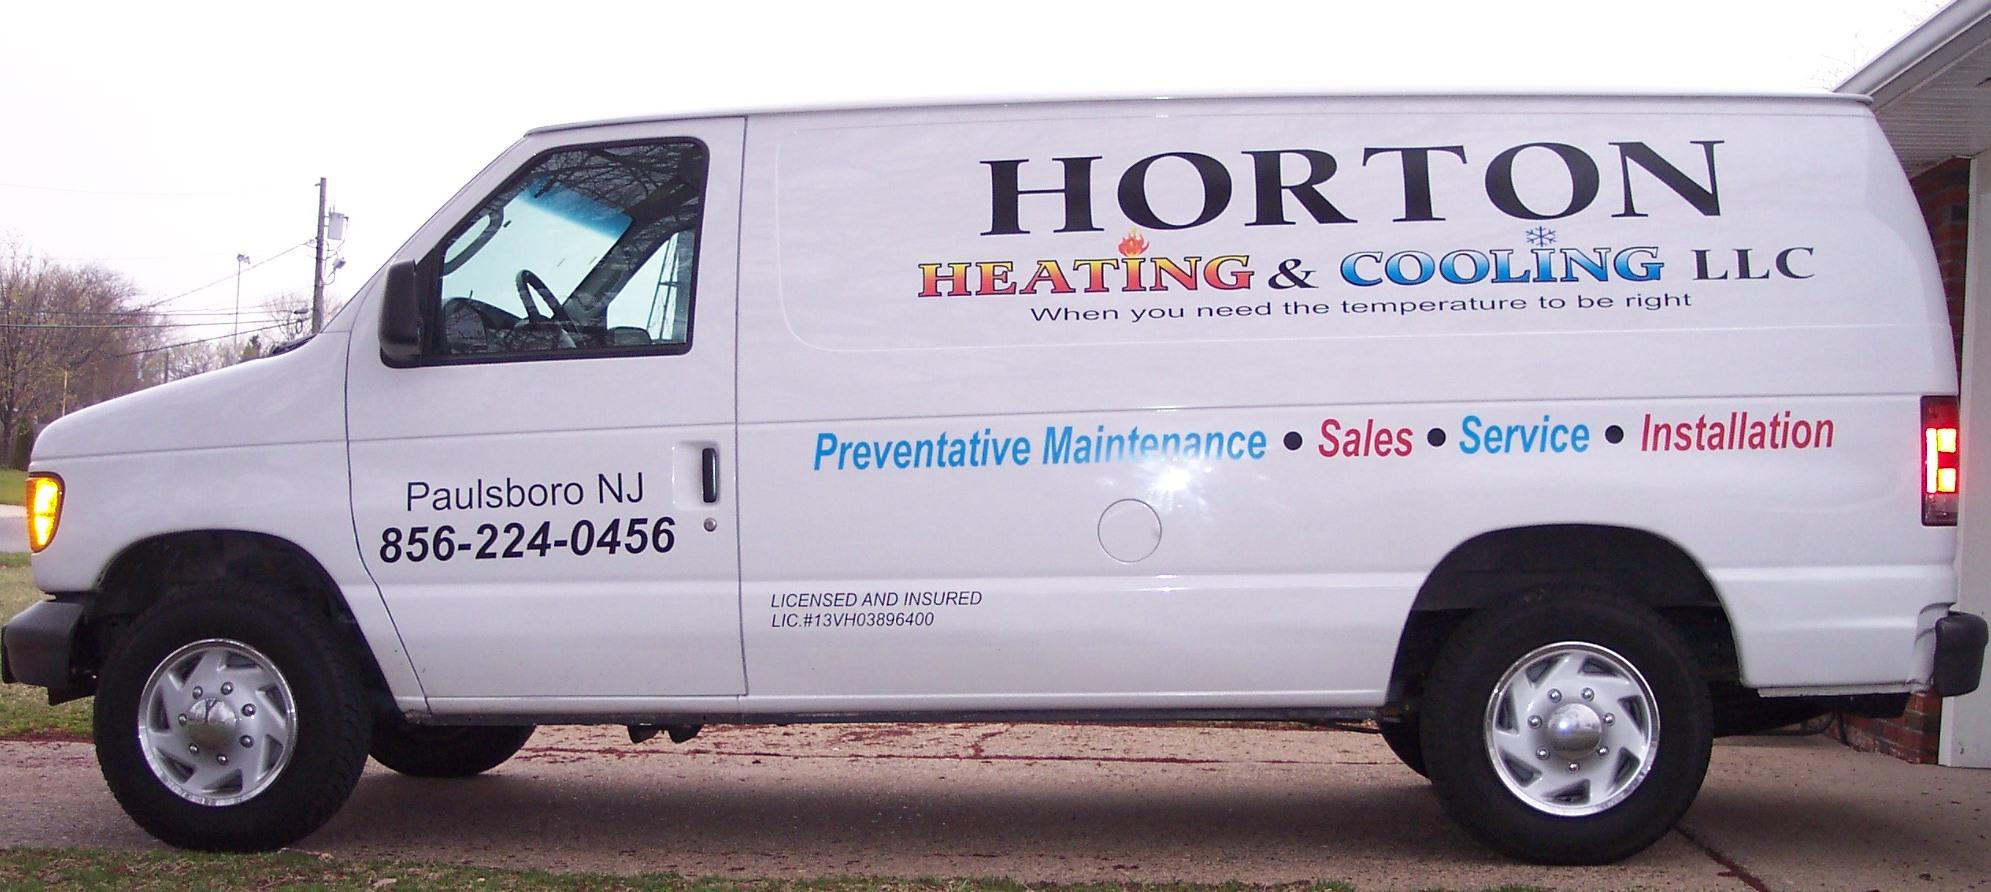 Horton Heating and Cooling, LLC